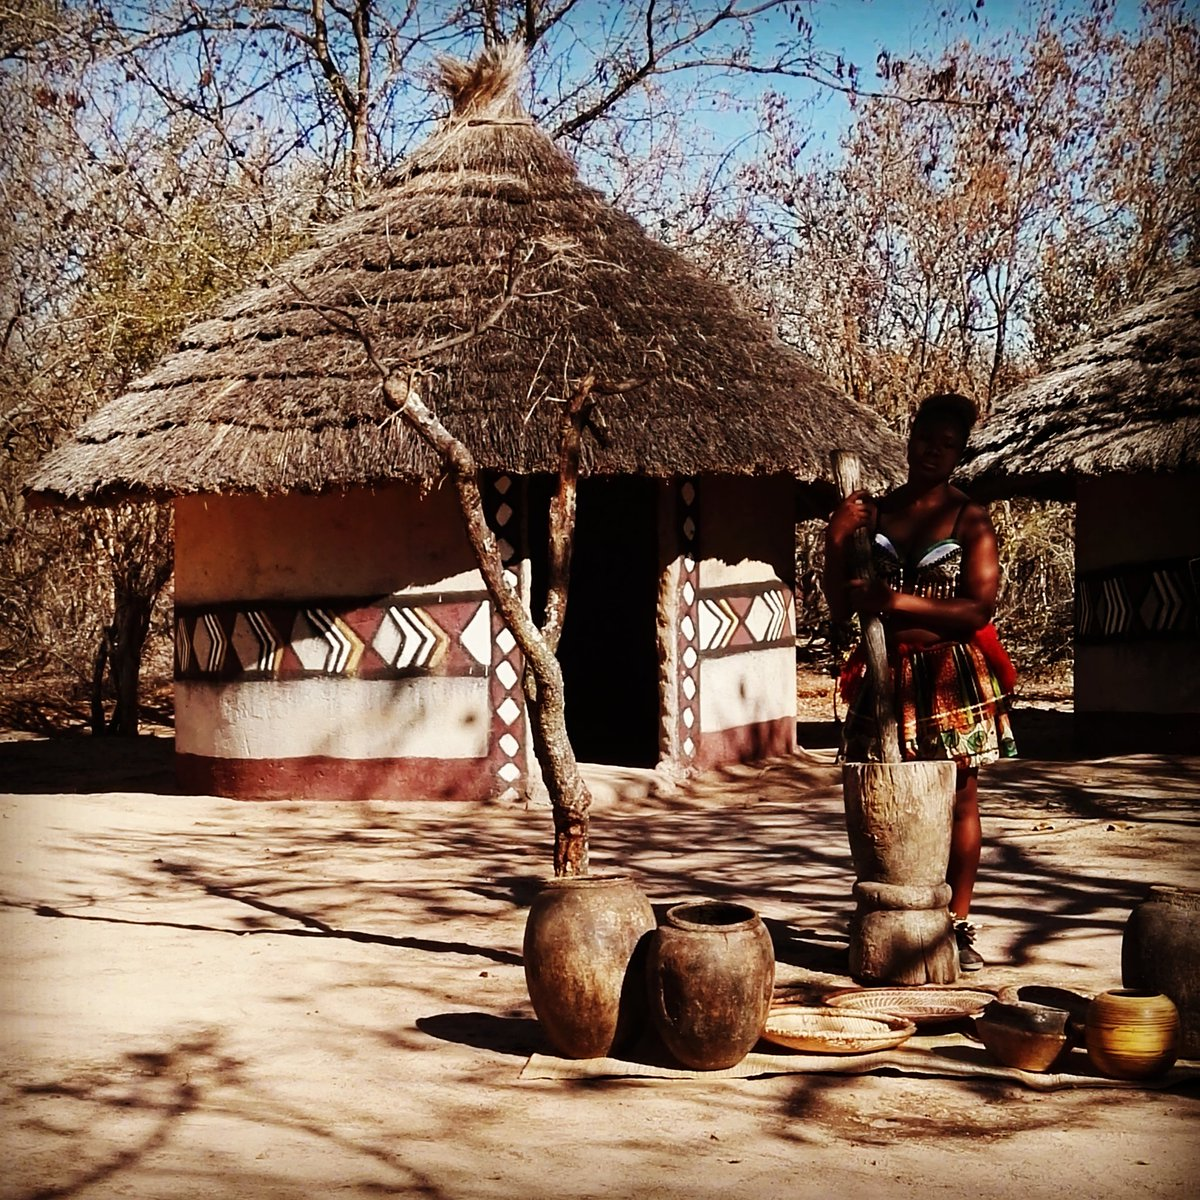 Peter Jacobs On Twitter Today I Ate The Famous Mopani Wurm In The Nyani Cultural Village Hoedspruit Limpopo Nyaniculturalvillage Mopani